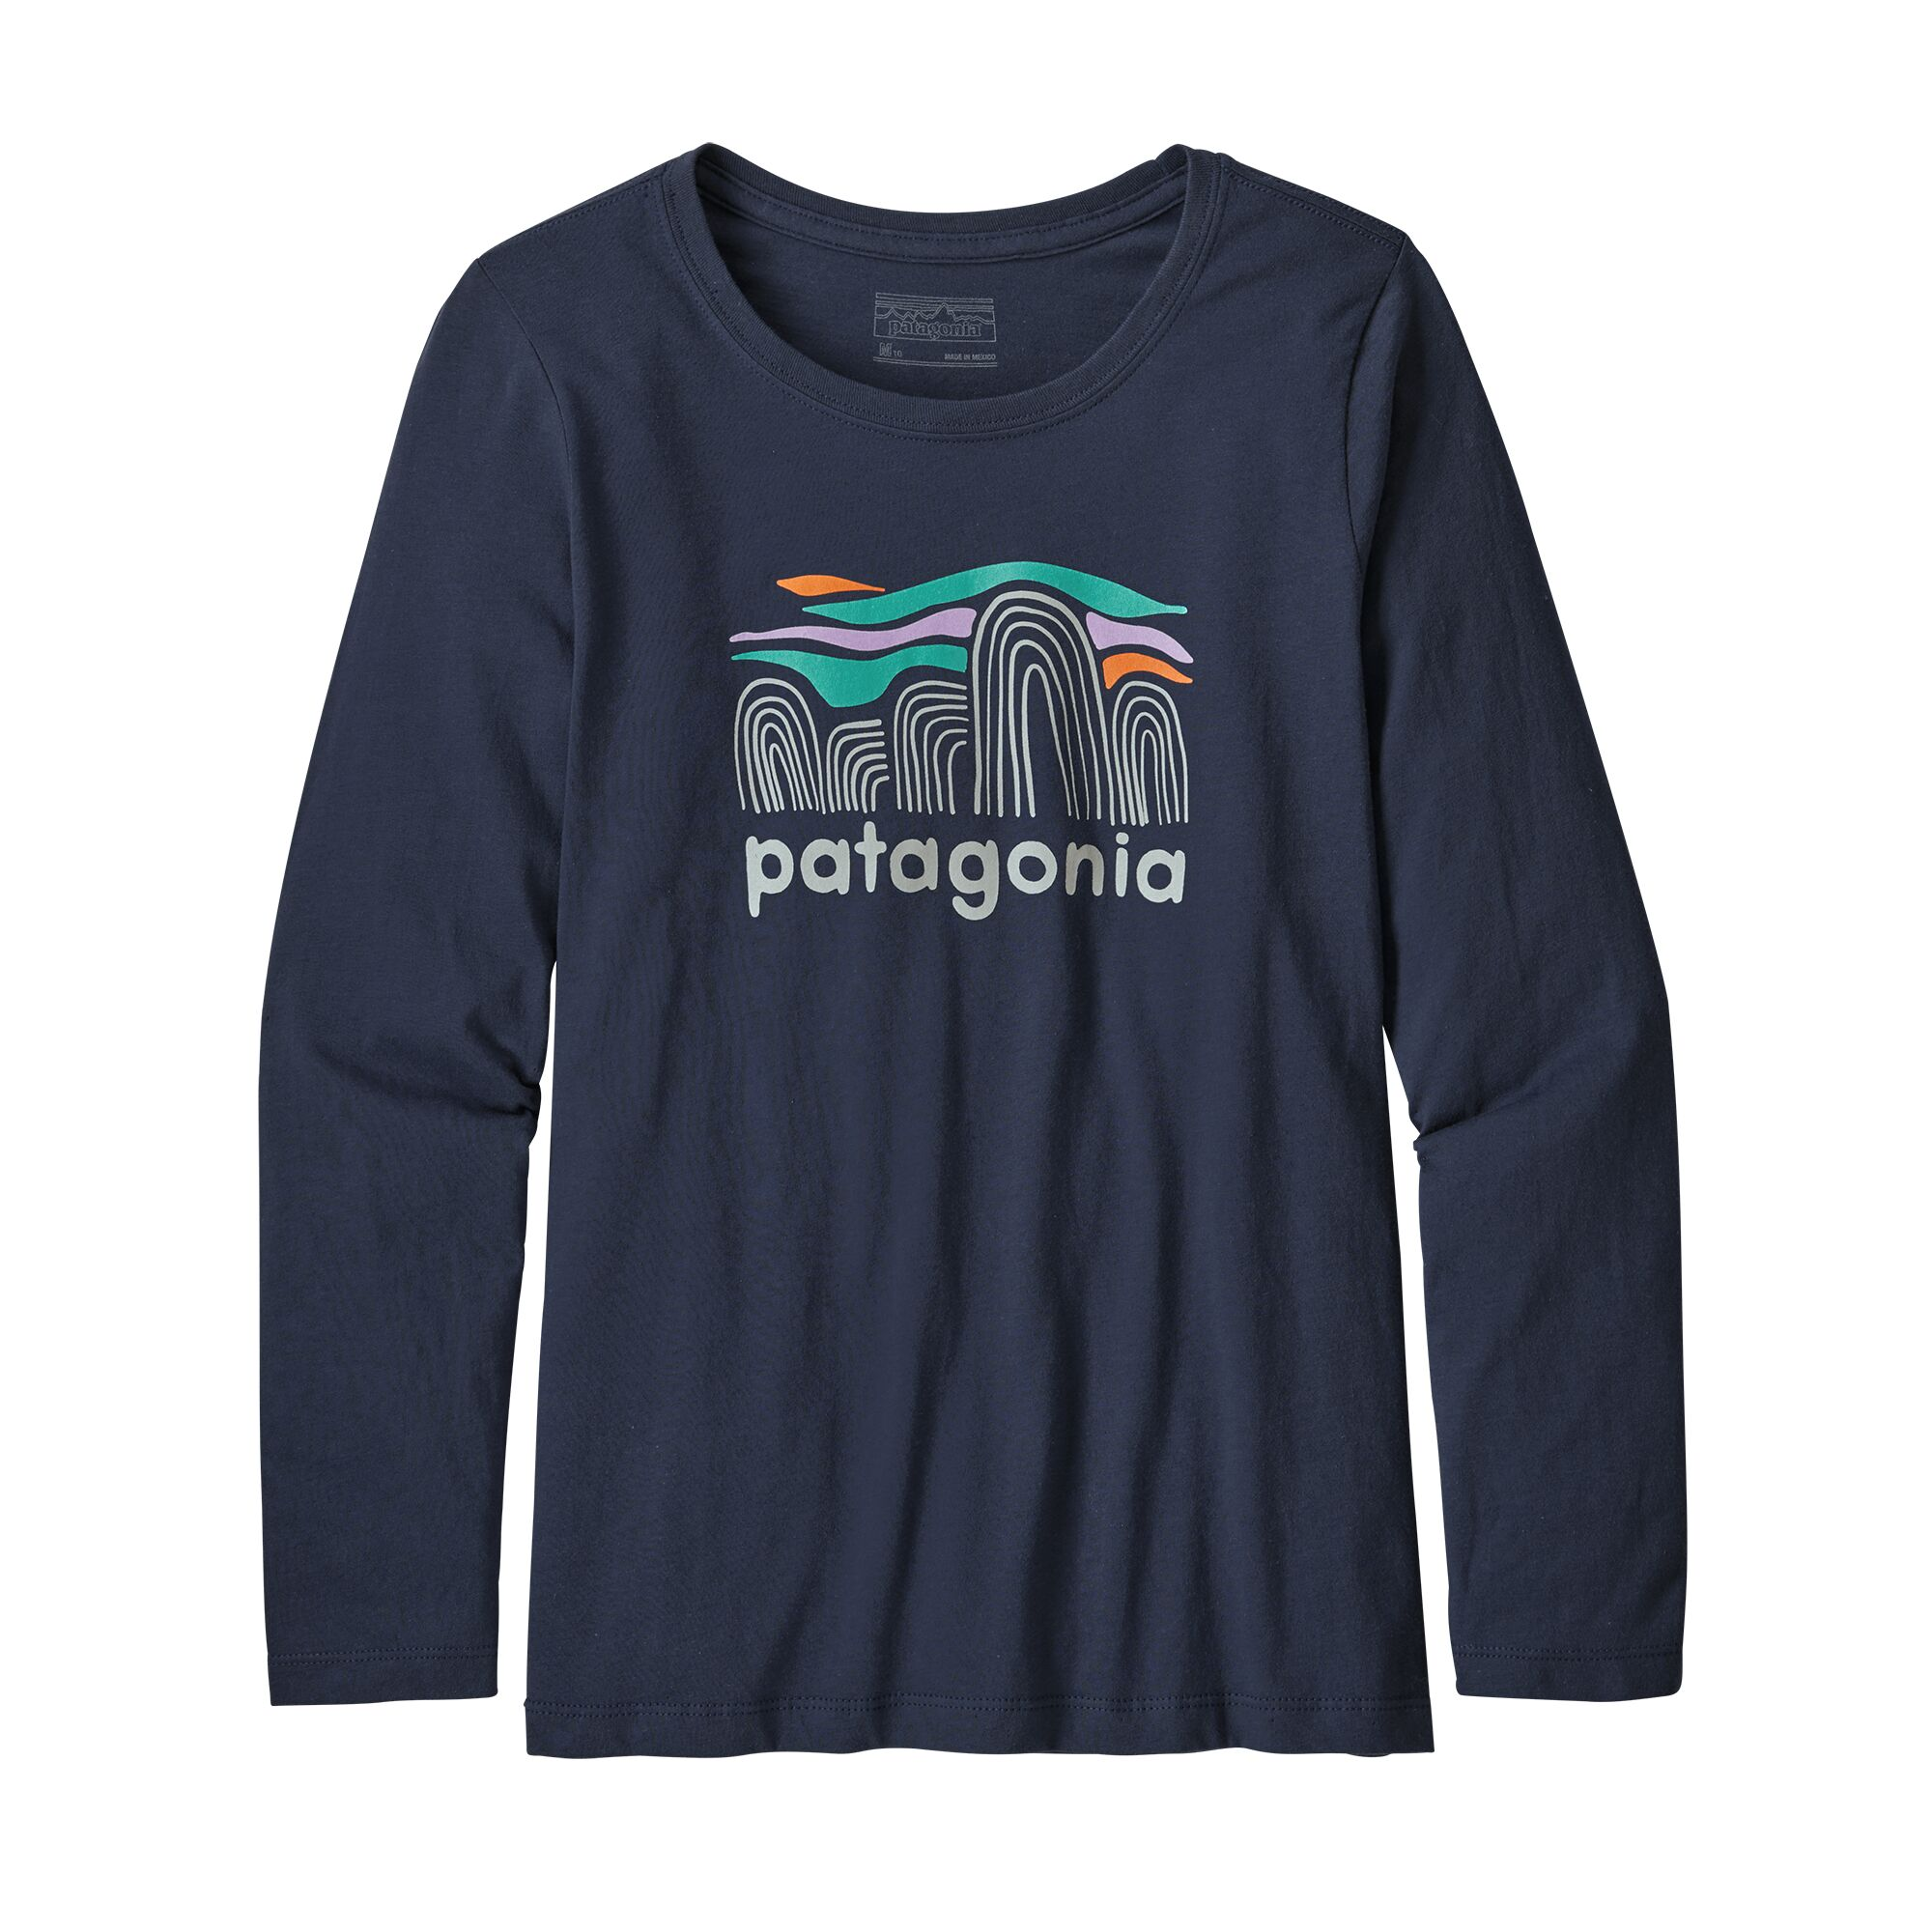 Patagonia Girls Long-Sleeved Graphic Organic T-Shirt